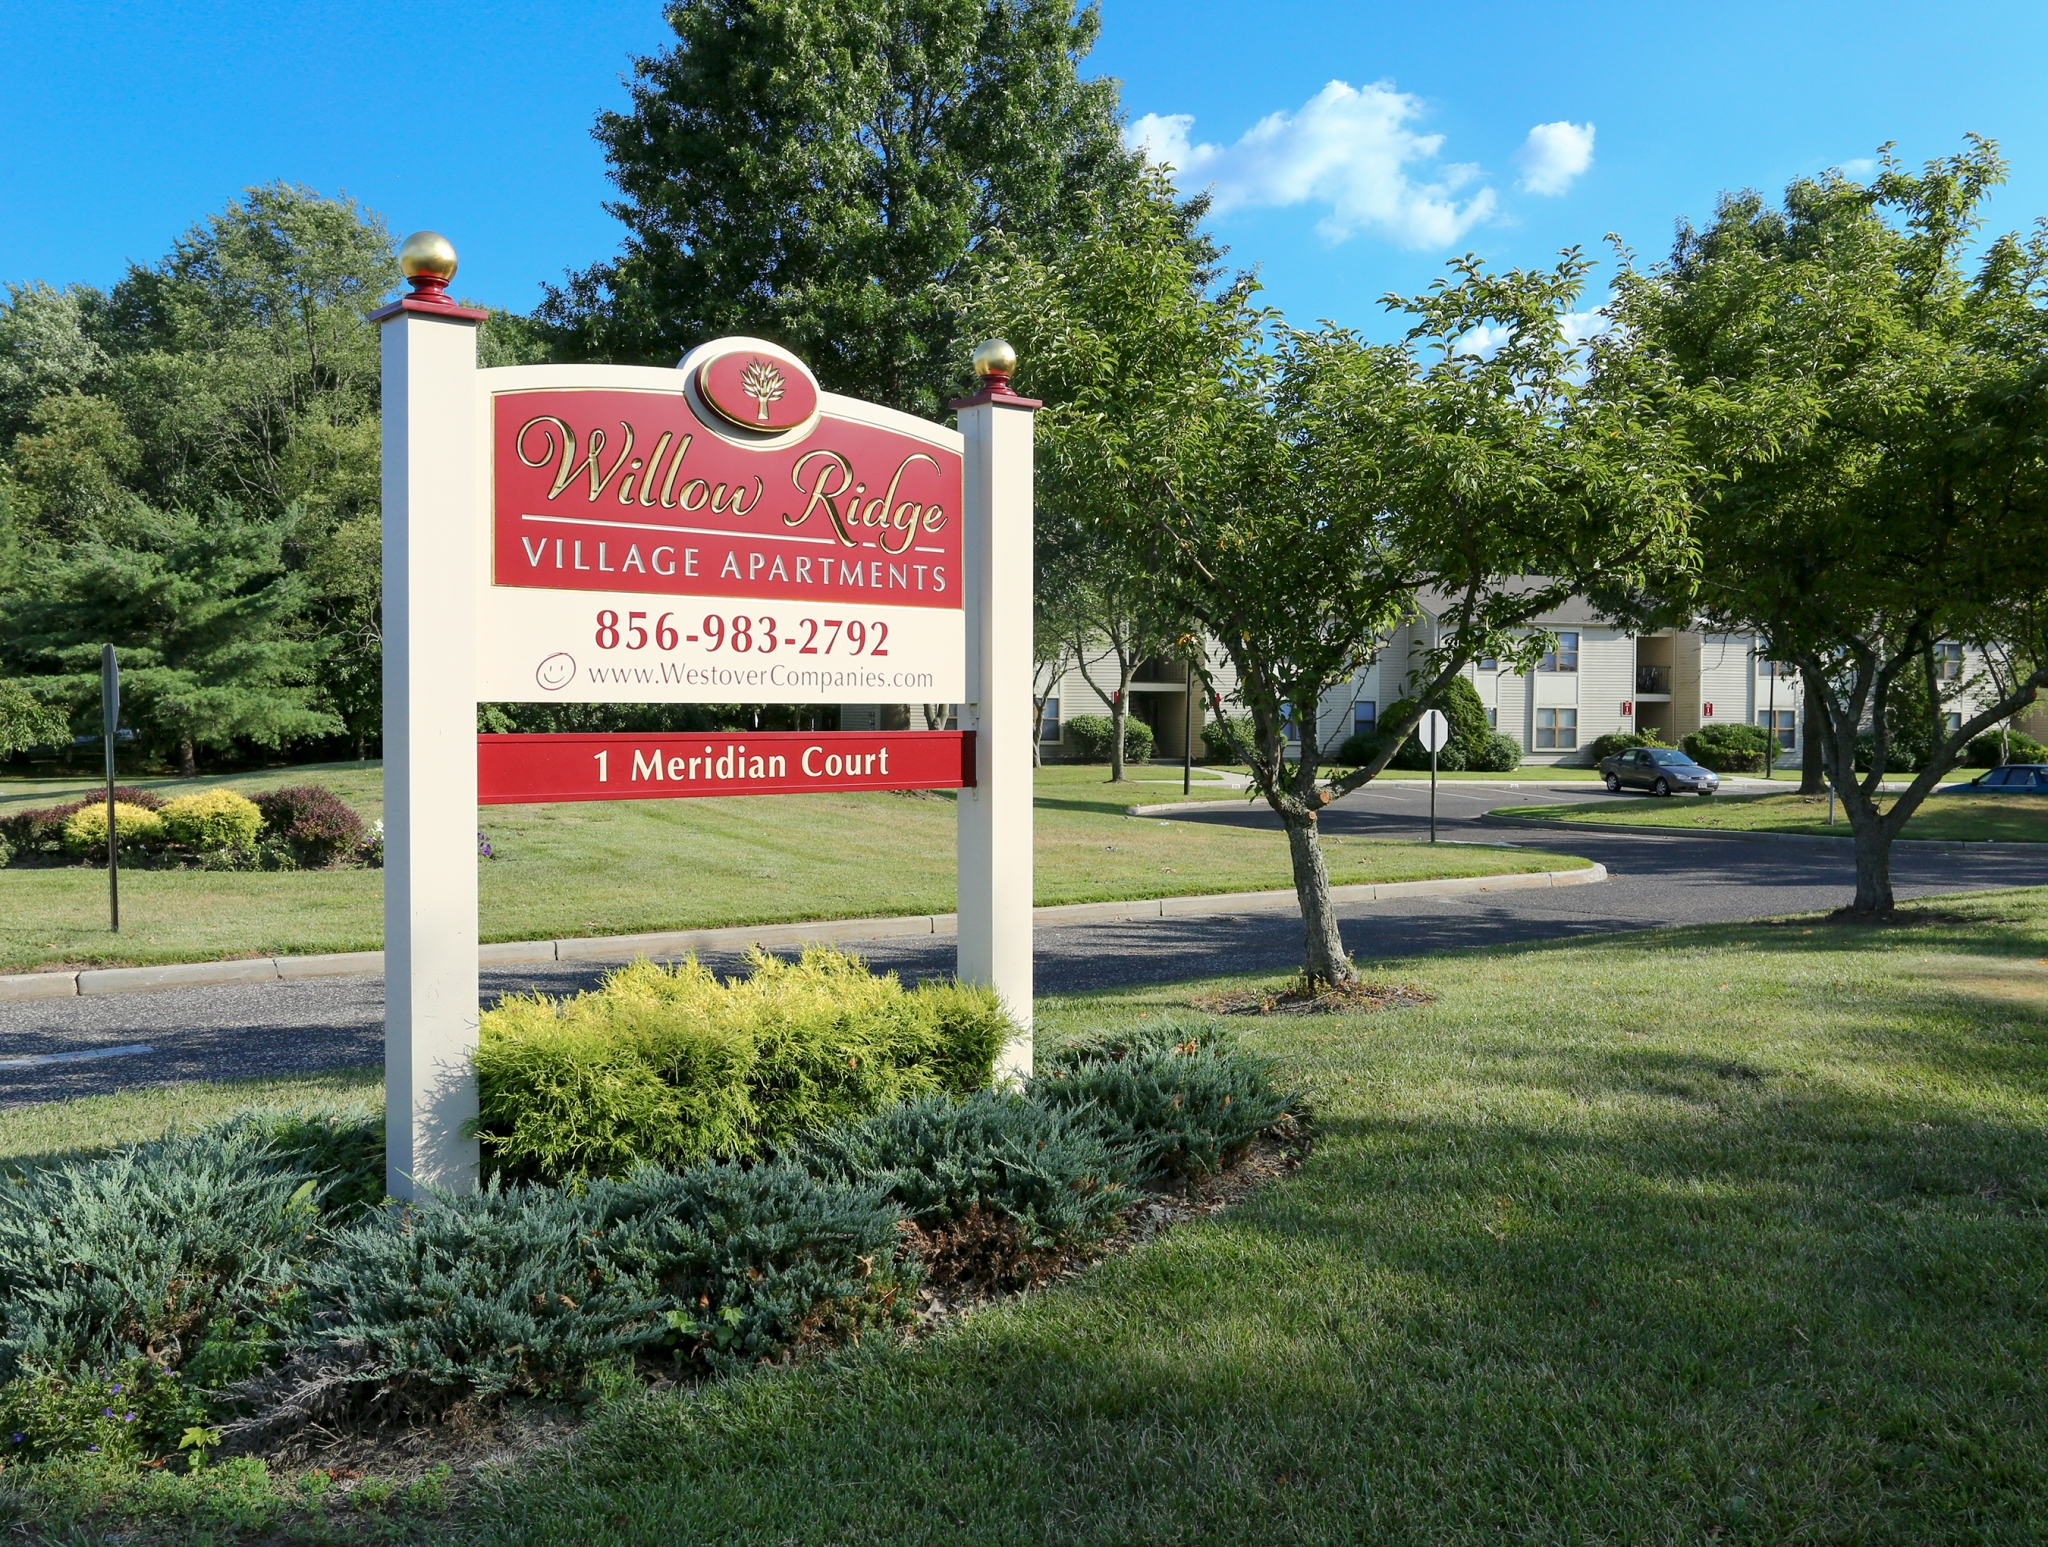 Willow Ridge Village Apartments image 0